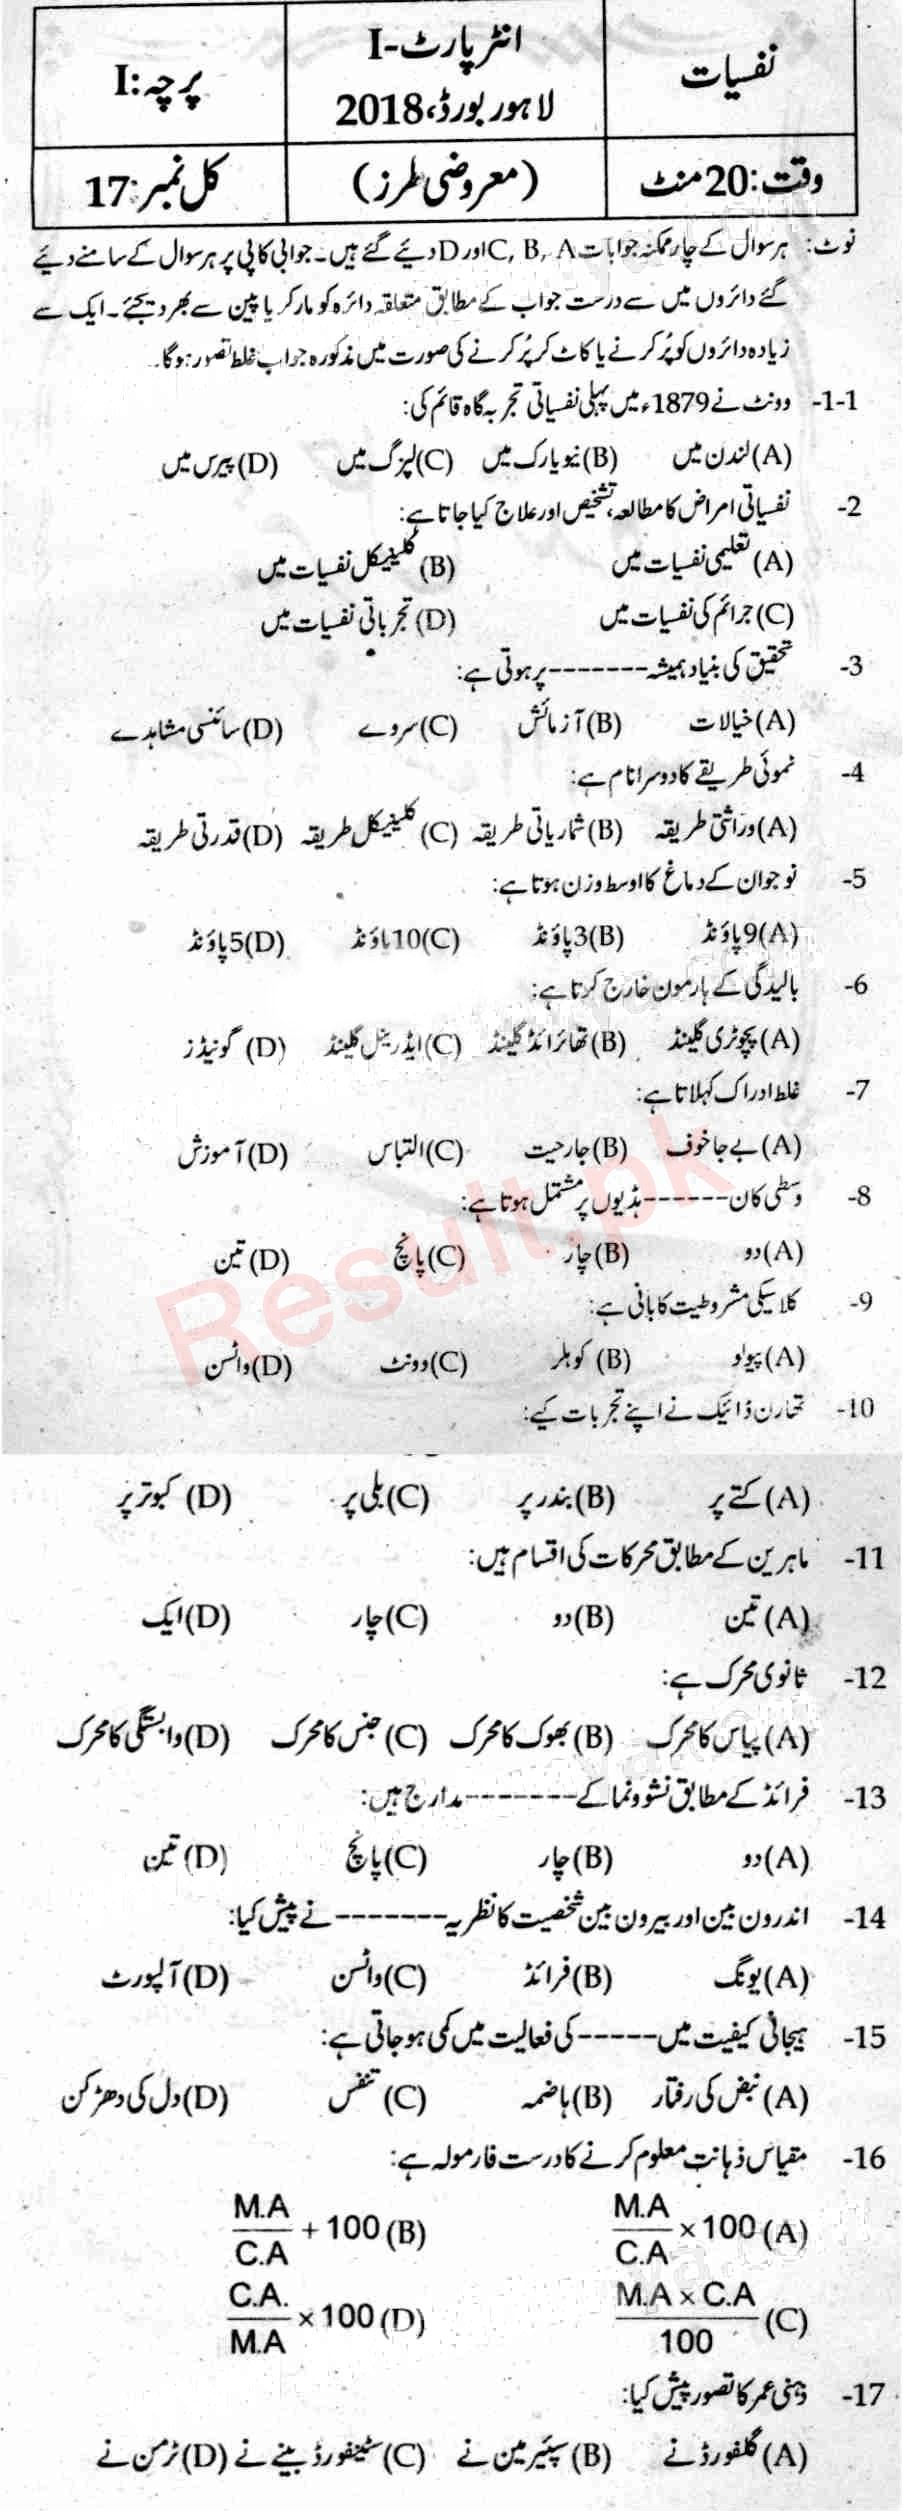 BISE Lahore Board Past Papers 2018 2019 Inter Part 1 2, FA